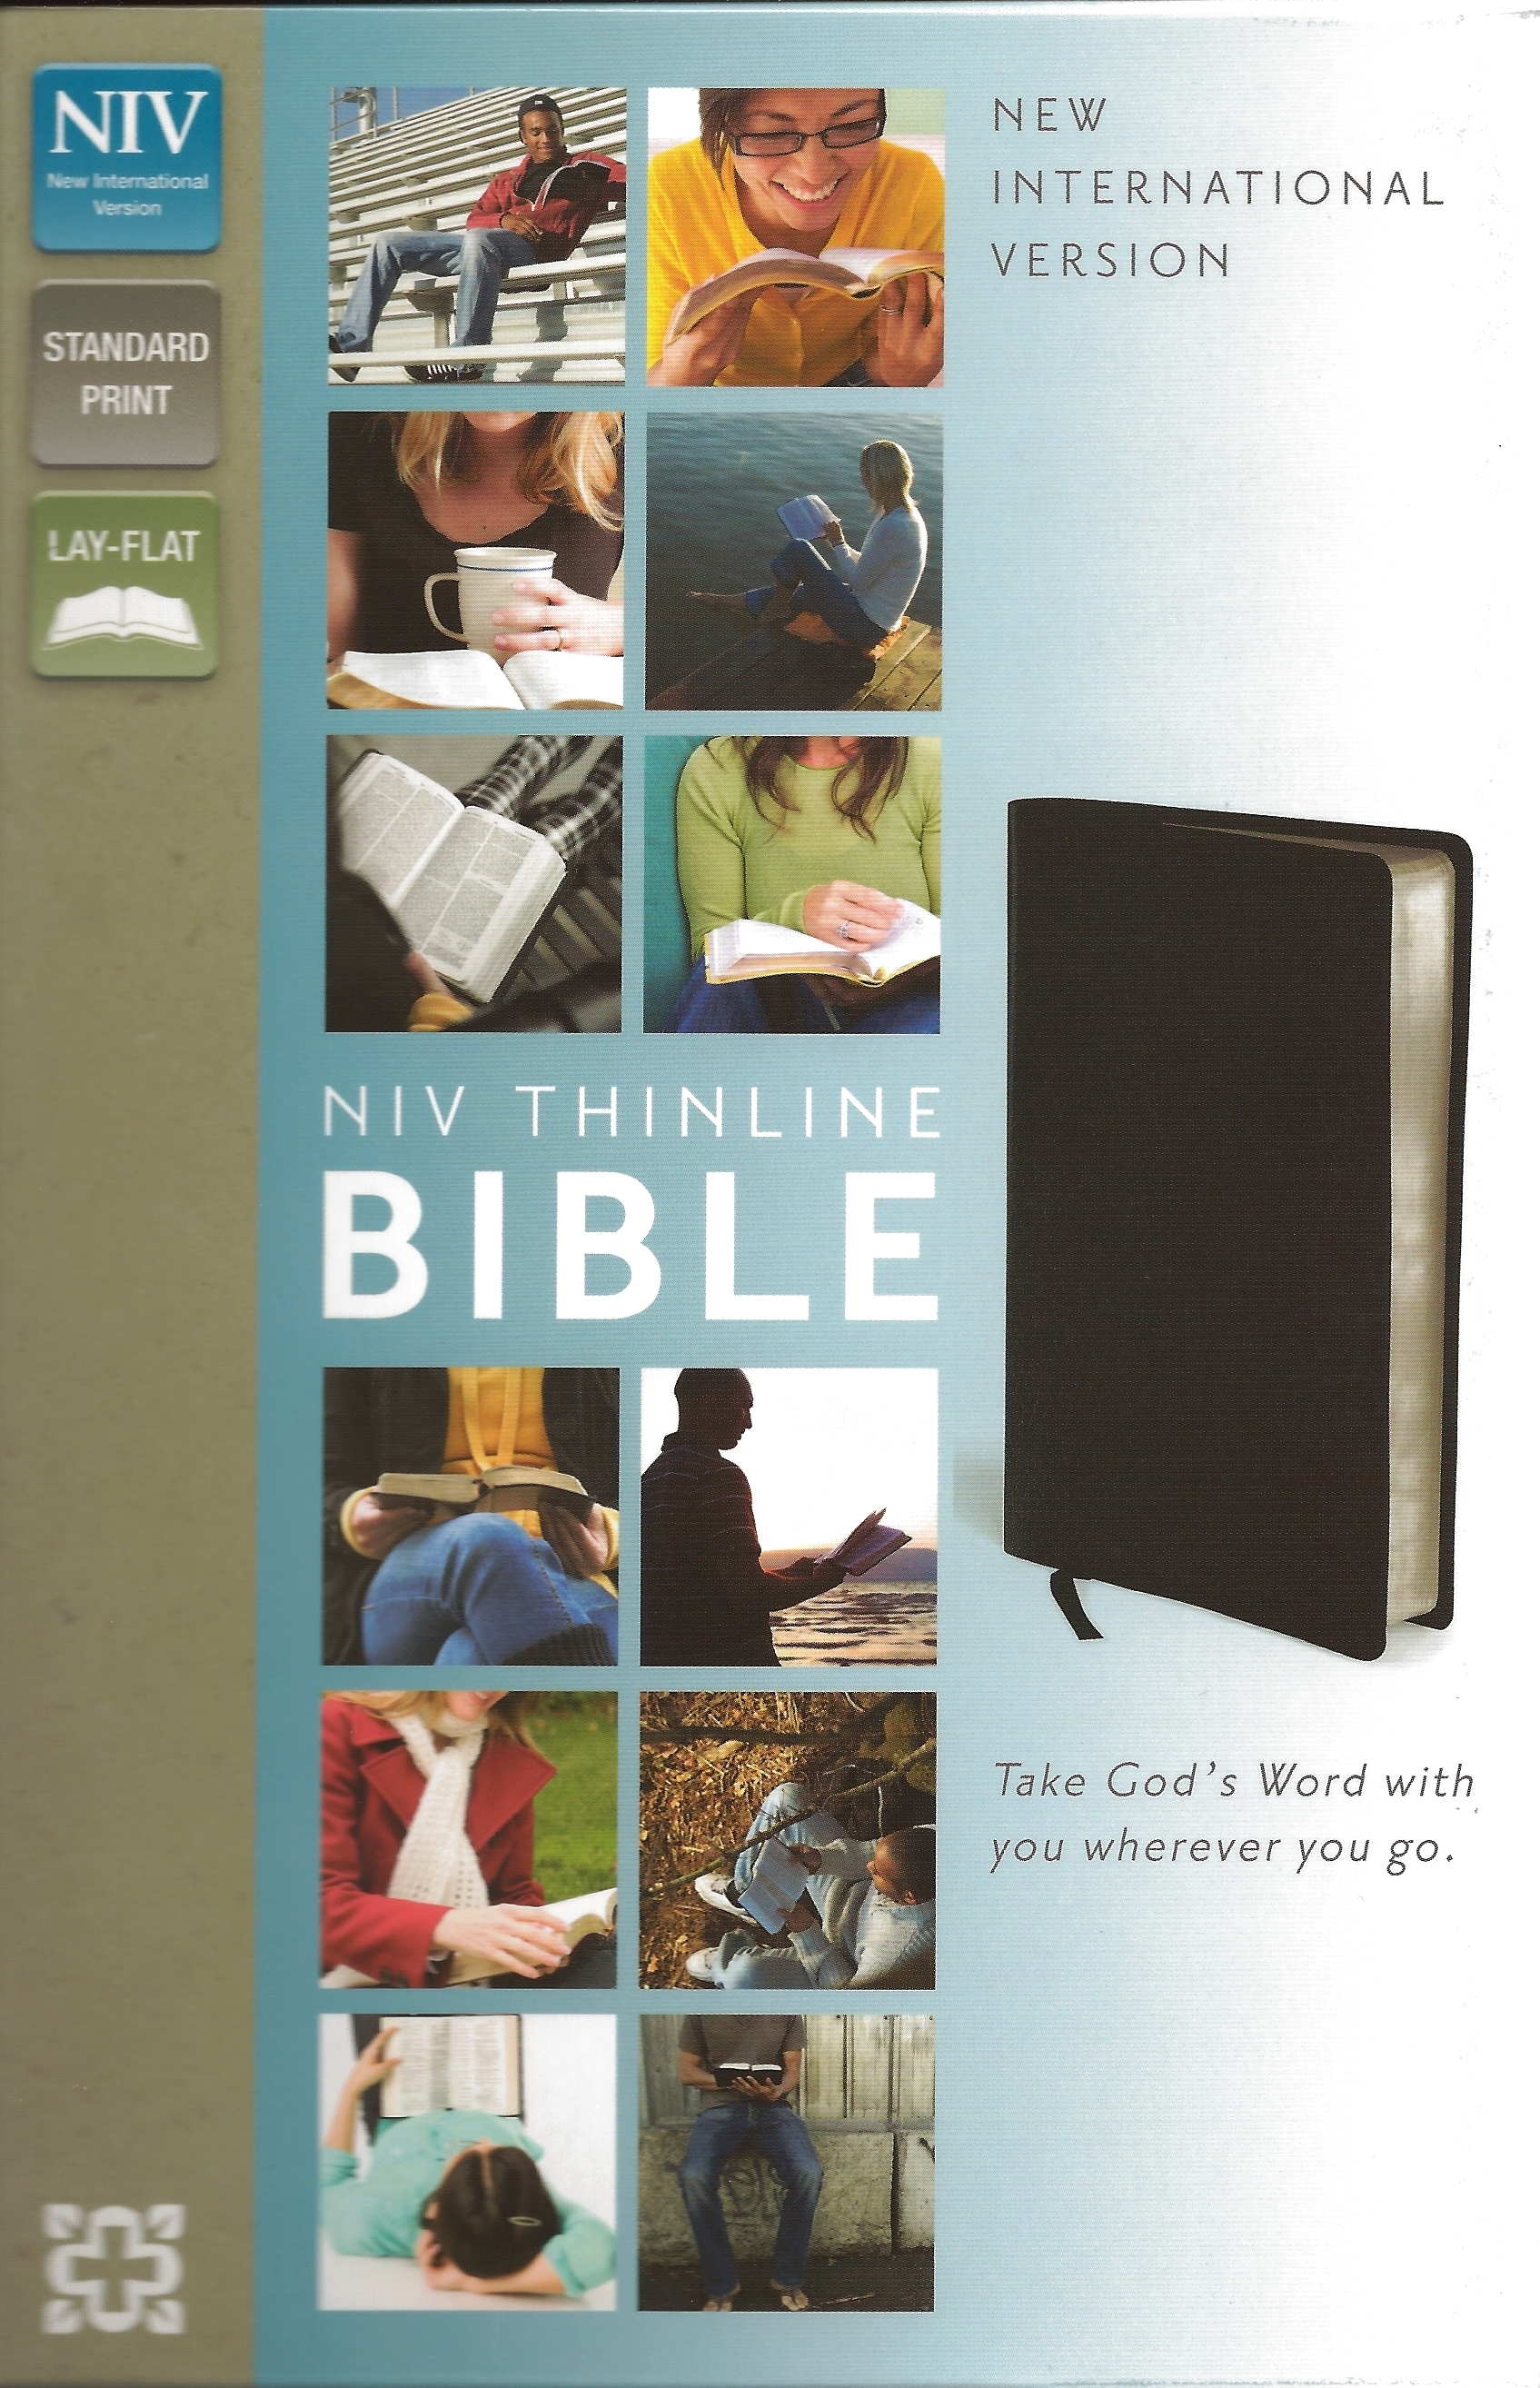 NIV THINLINE BIBLE Bonded Leather